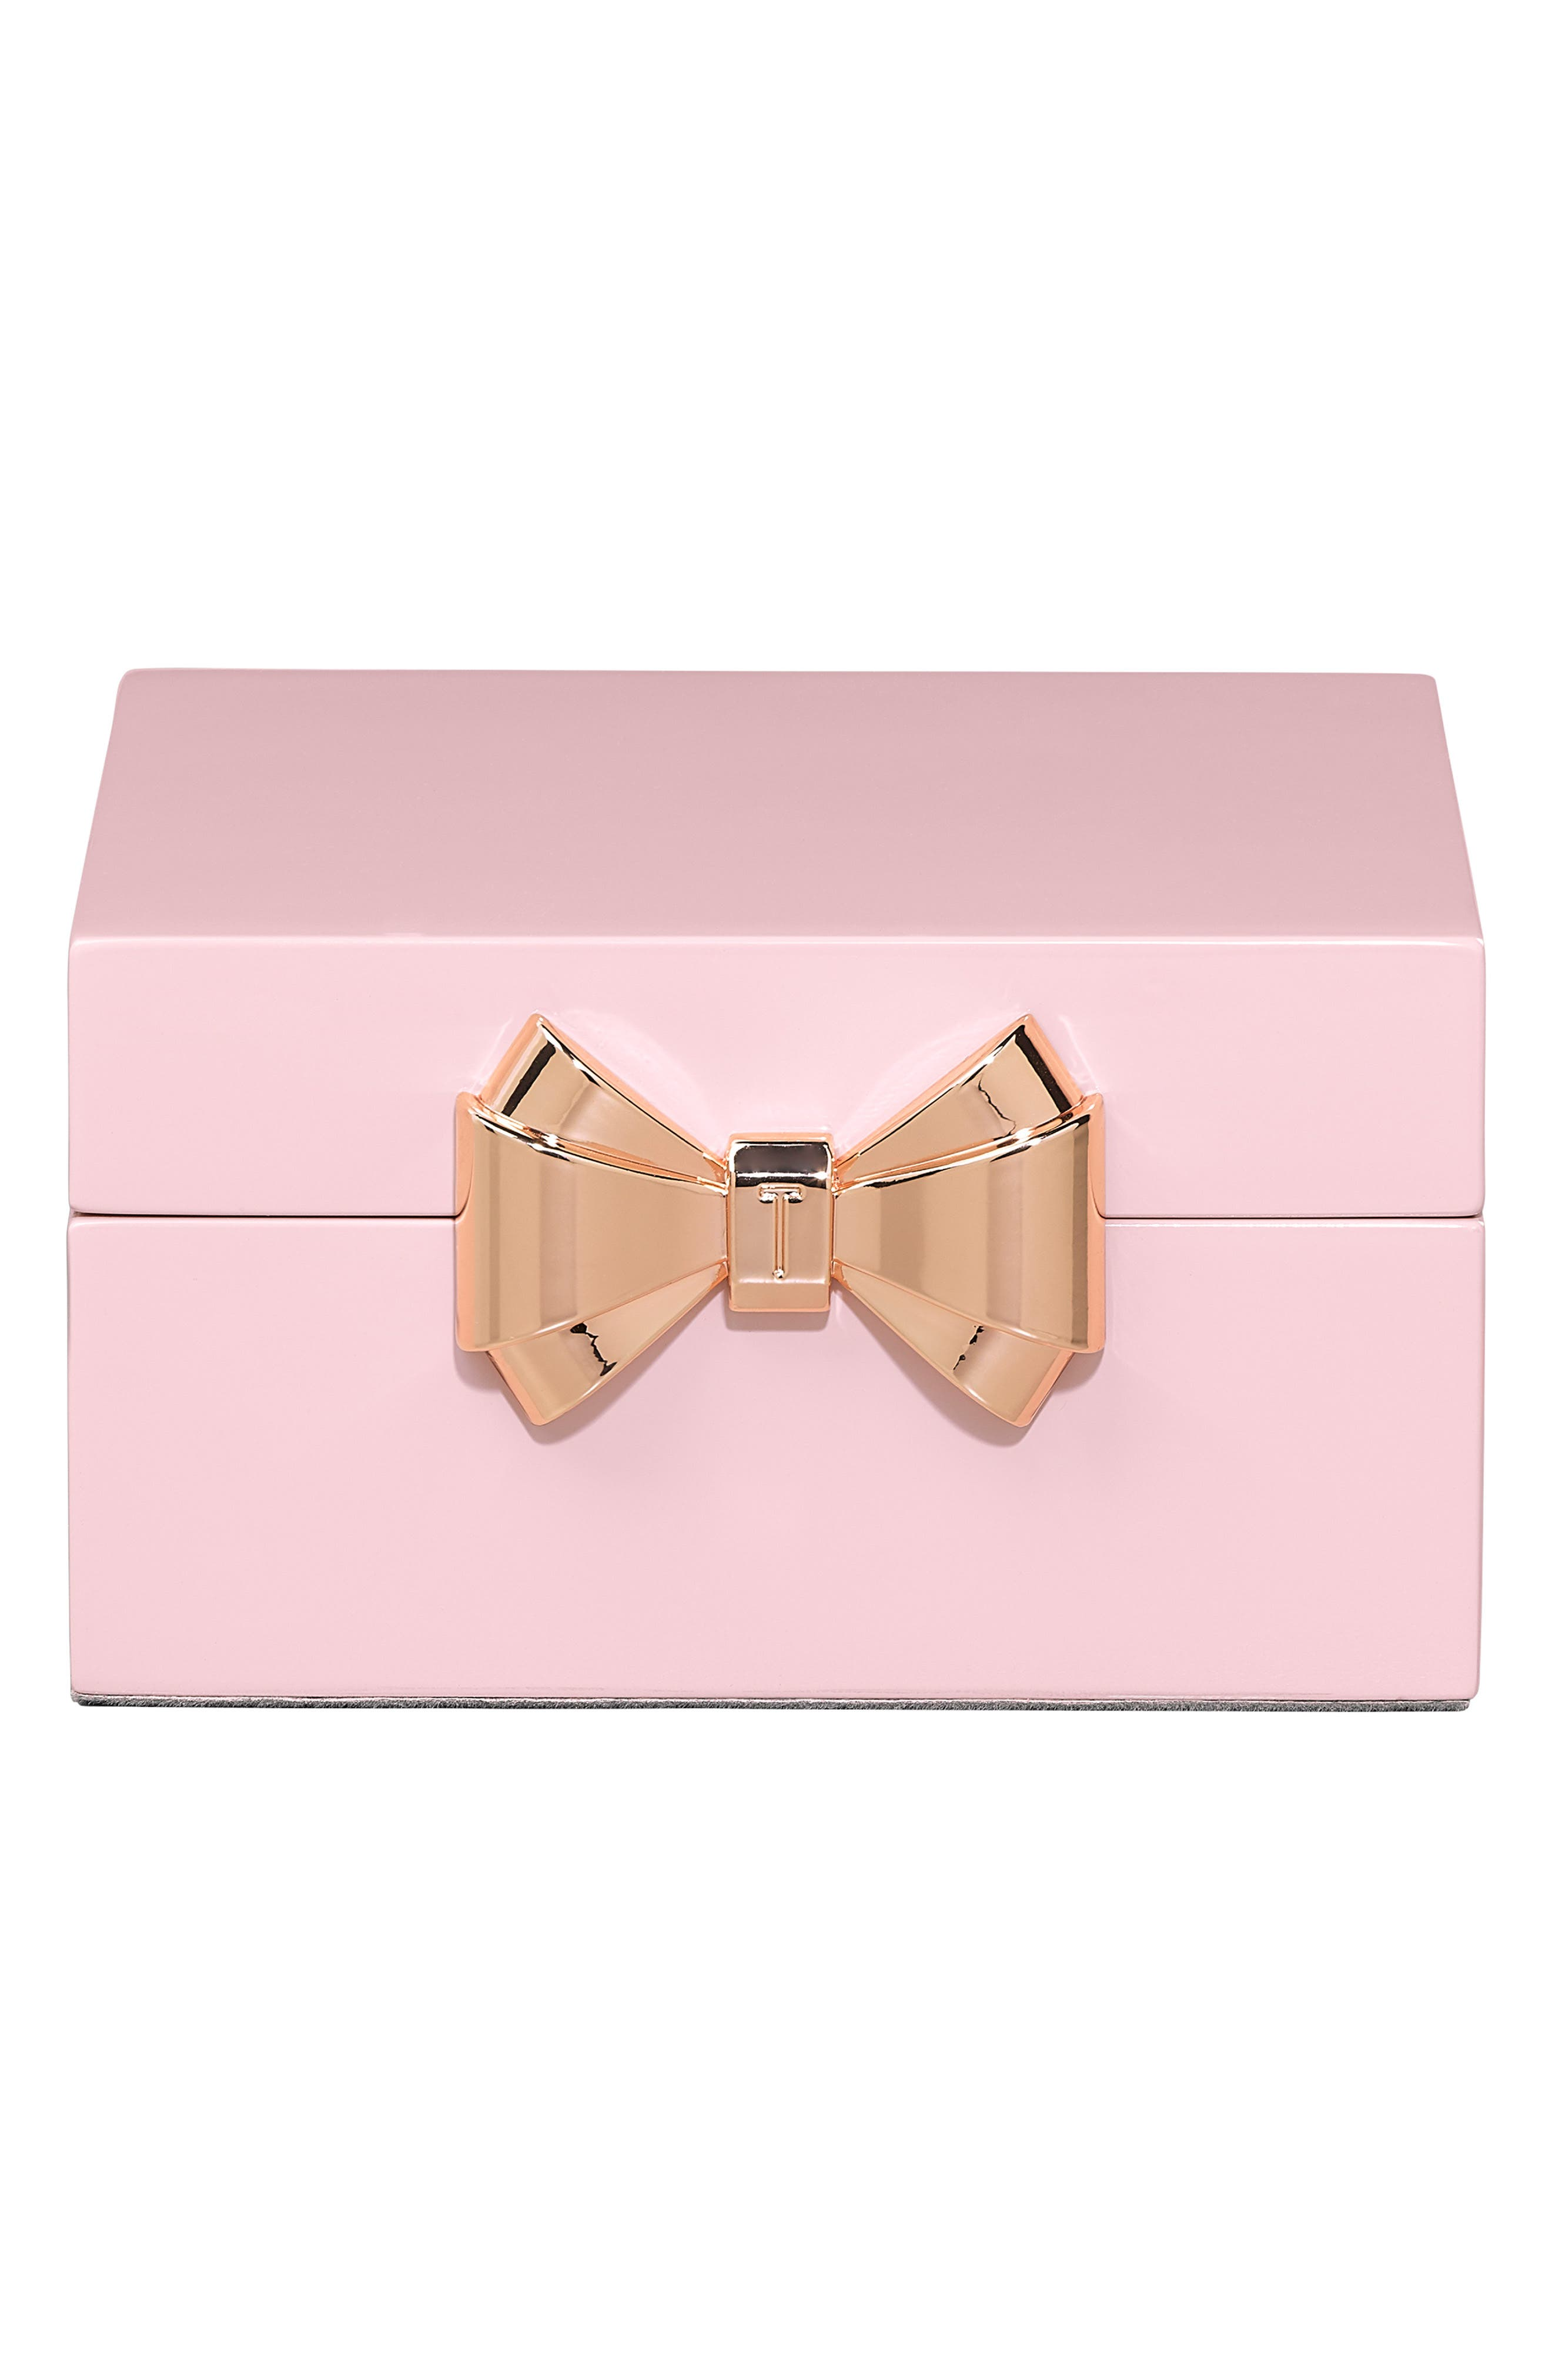 Square Jewelry Box,                         Main,                         color, Pink